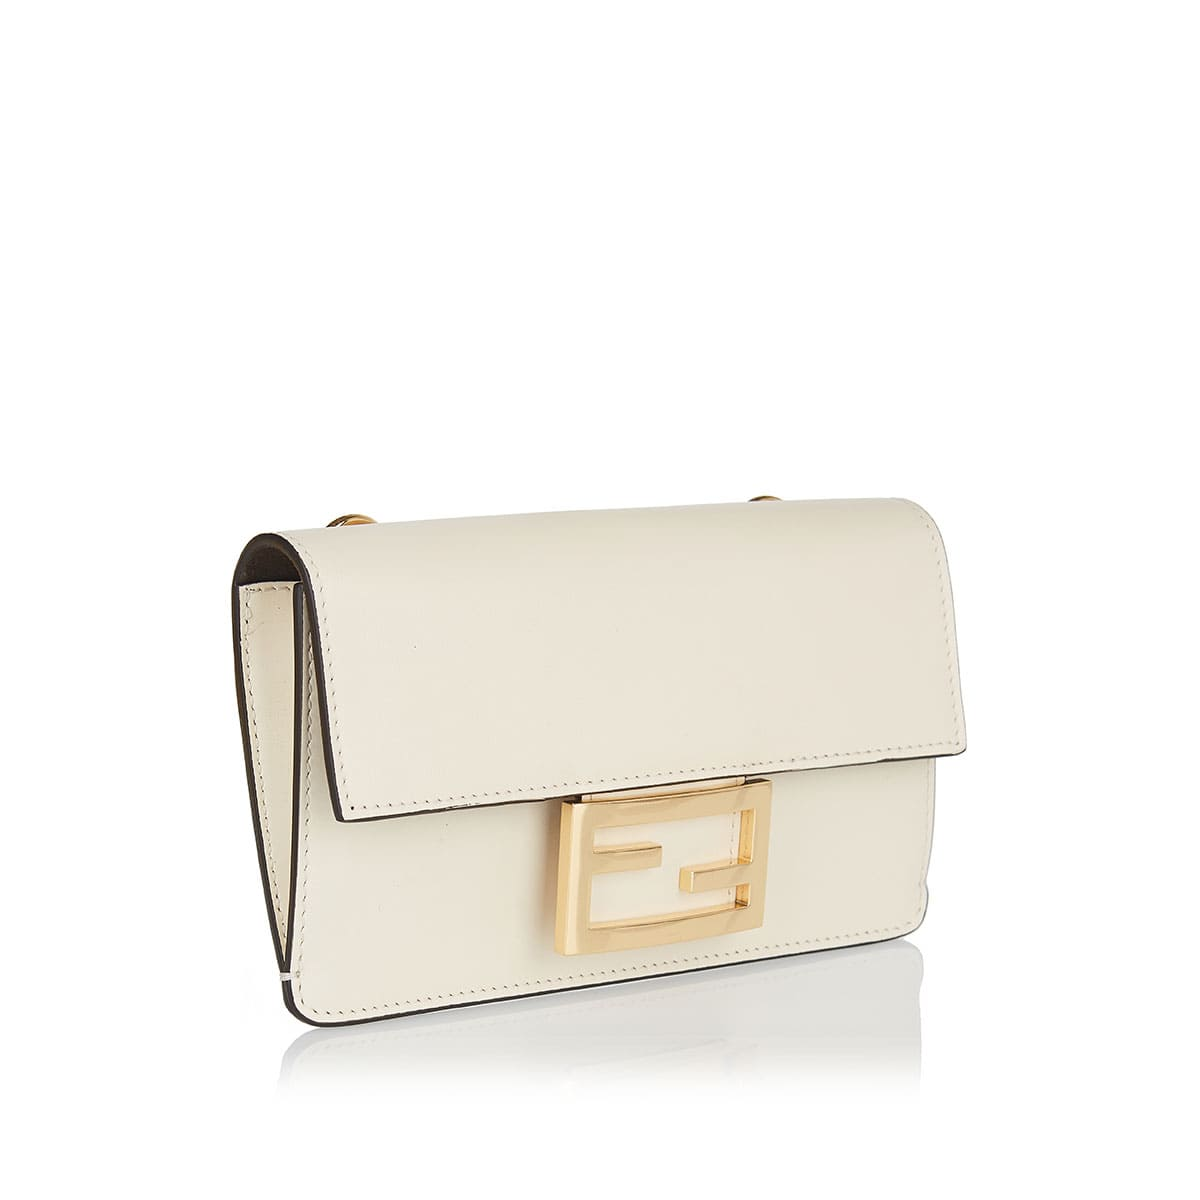 Baguette flat leather mini bag